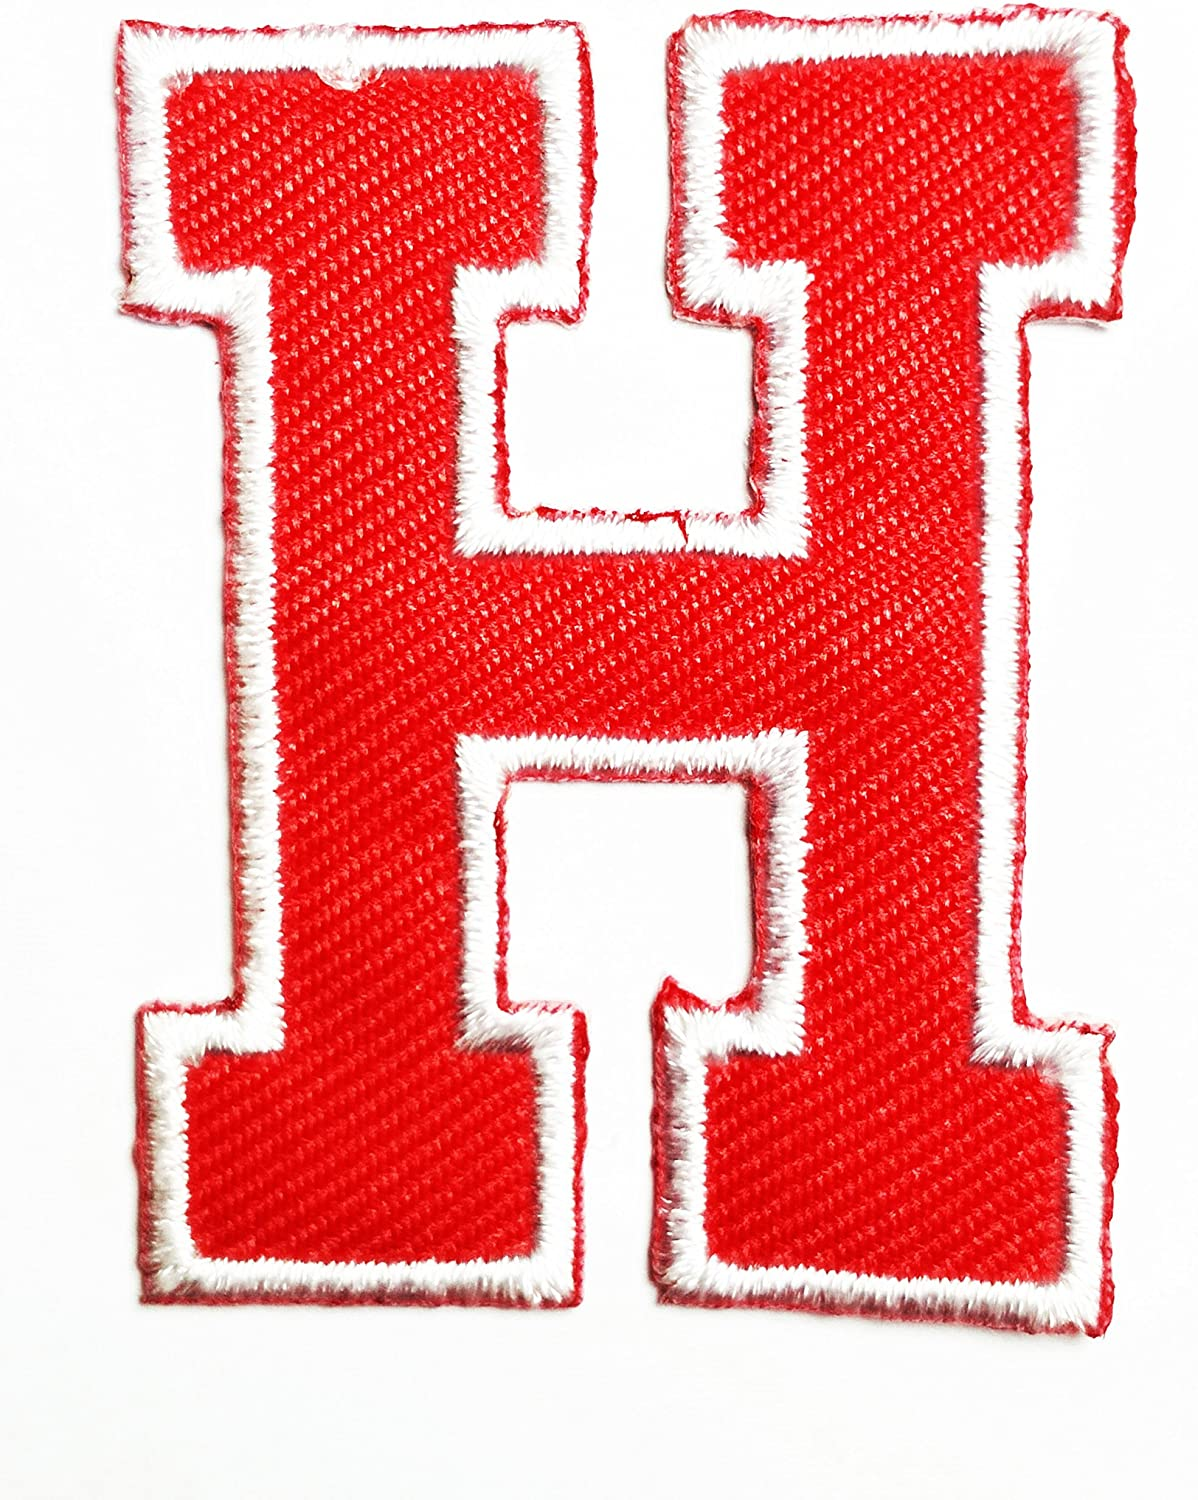 HHO Red letter H Patch English Alphabet Character Embroidered DIY Patches, Cute Applique Sew Iron on Kids Craft Patch for Bags Jackets Jeans Clothes